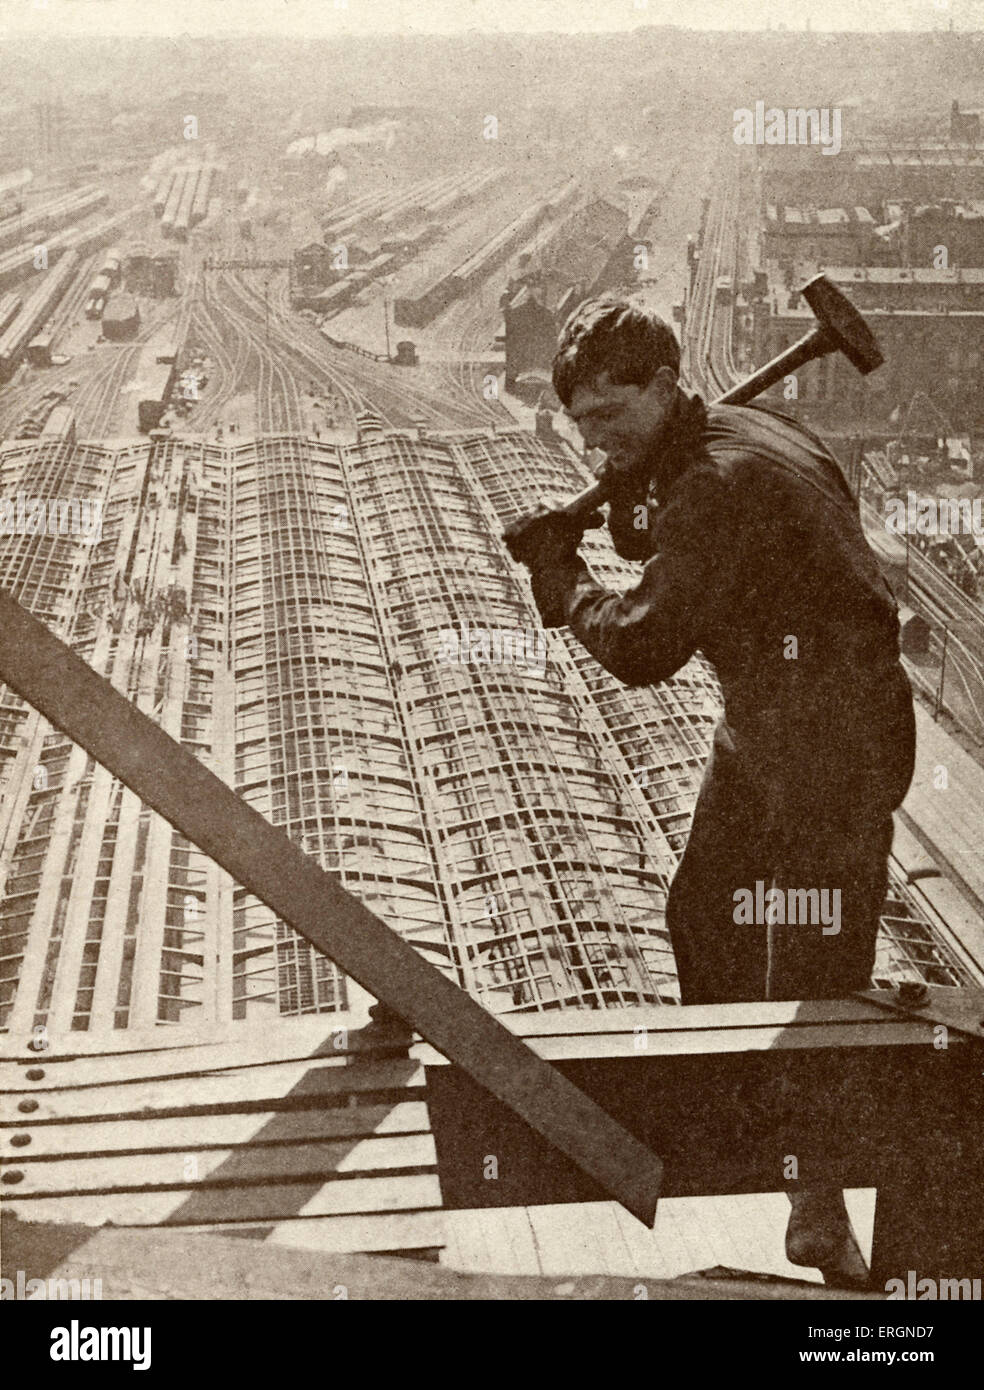 Worker on scaffold -Caption reads 'At work on the frame of a lofty modern building.' - Stock Image